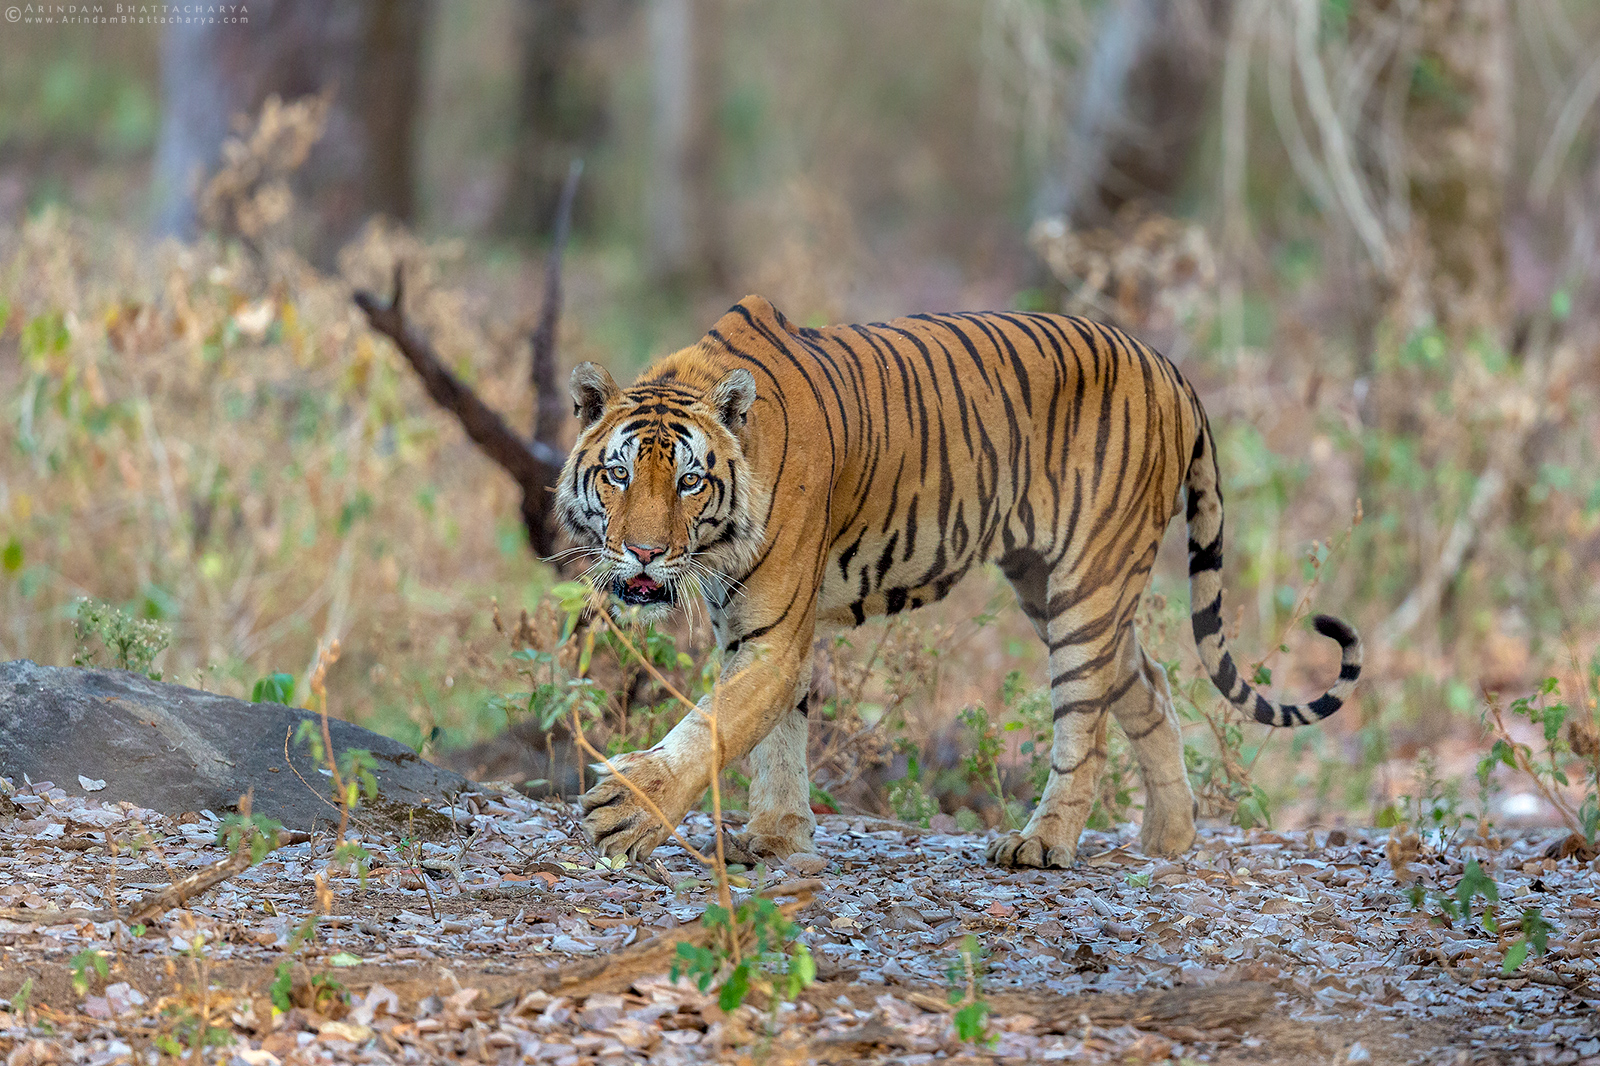 Royal Bengal Tiger or Panthera tigris tigris at Kanha National Park, Madhya Pradesh, India.